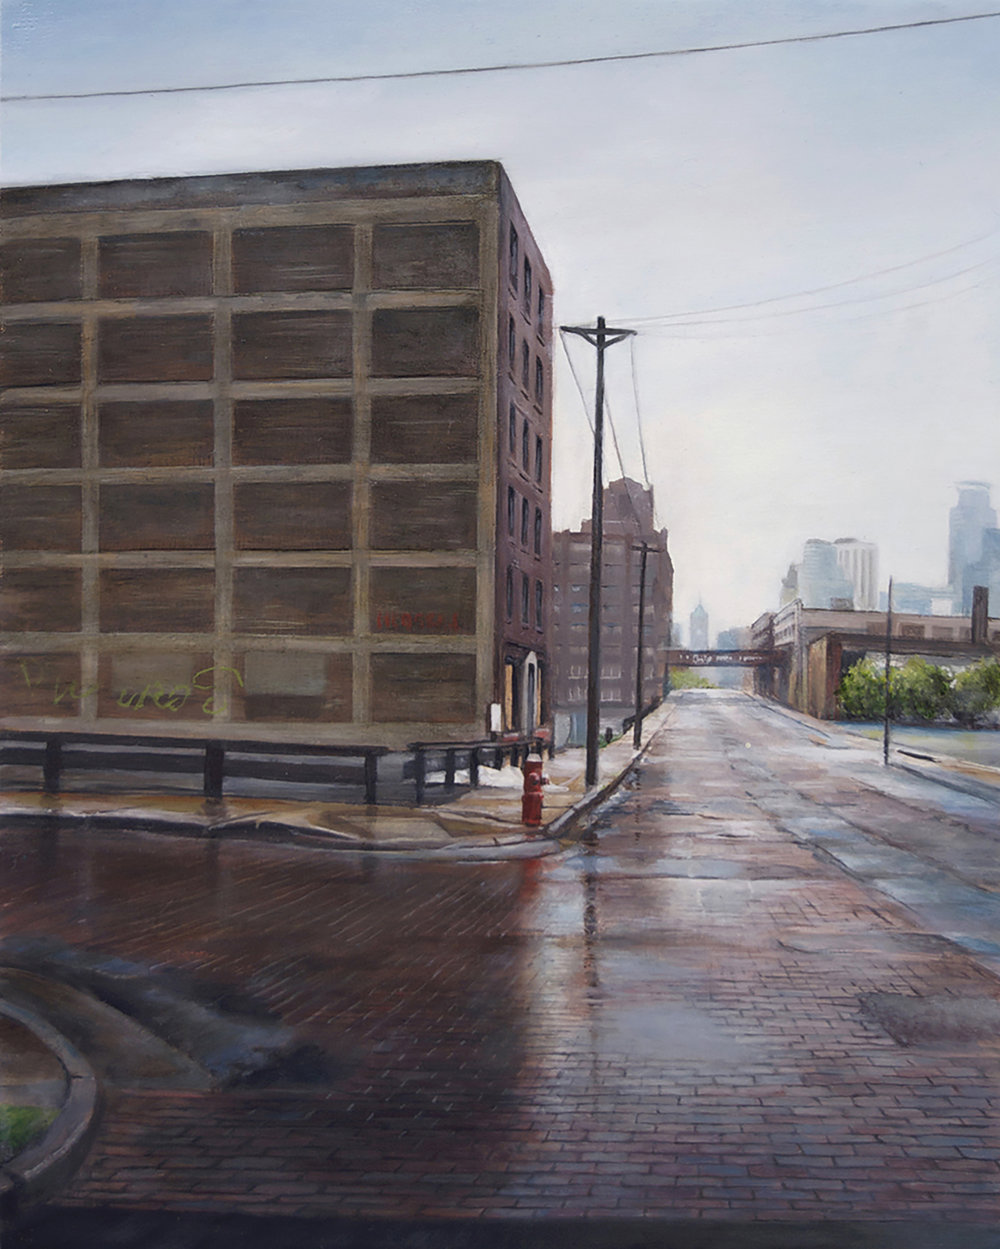 North 3rd Street at North 8th     Avenue, Minneapolis   2014  Oil on panel  10 x 8 inches